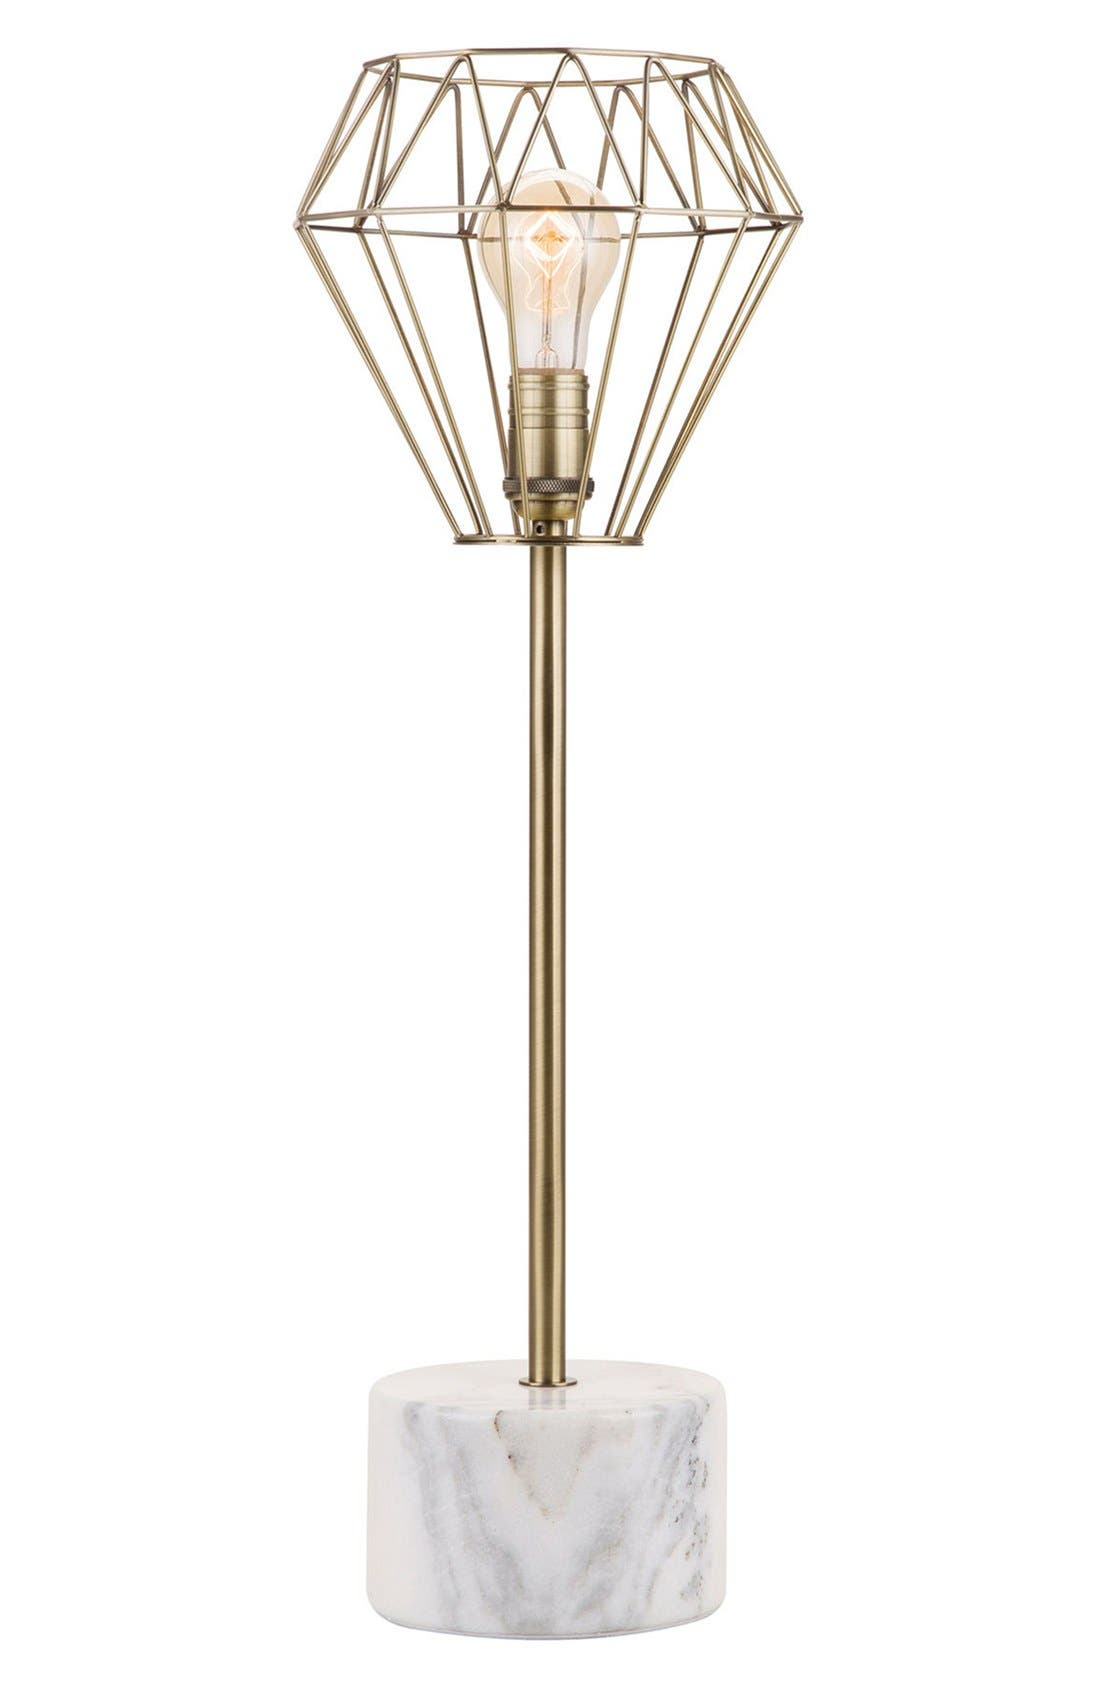 JALEXANDER LIGHTING JAlexander Brass & Marble Table Lamp